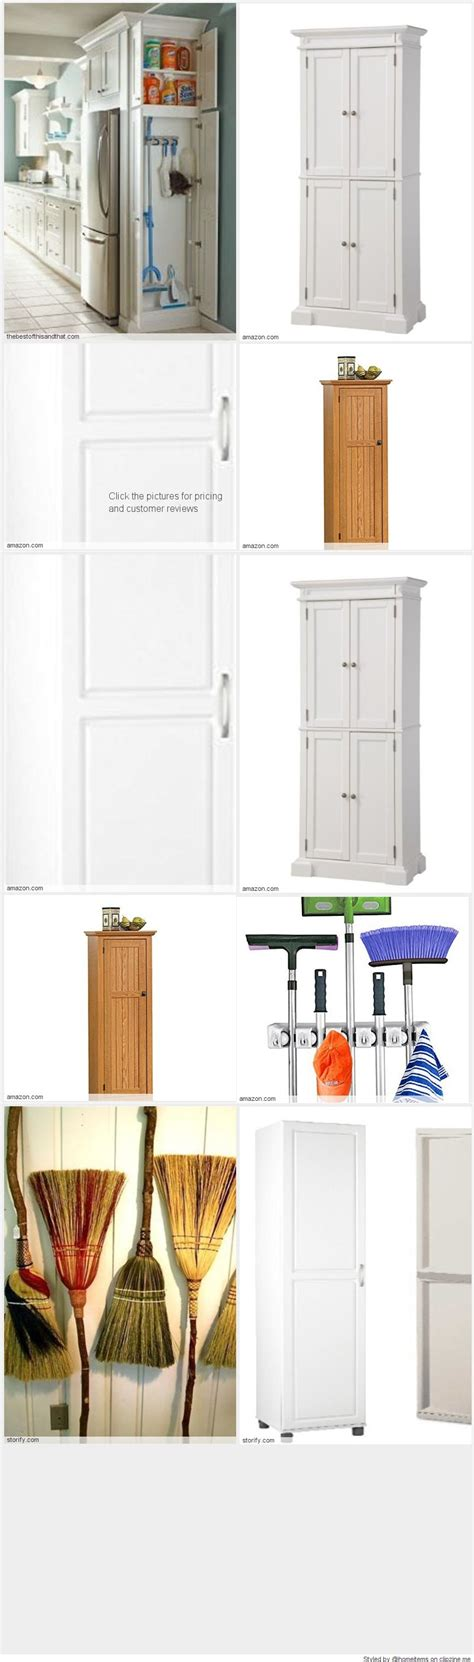 broom and mop cabinet glamorous stand alone closet for brooms roselawnlutheran